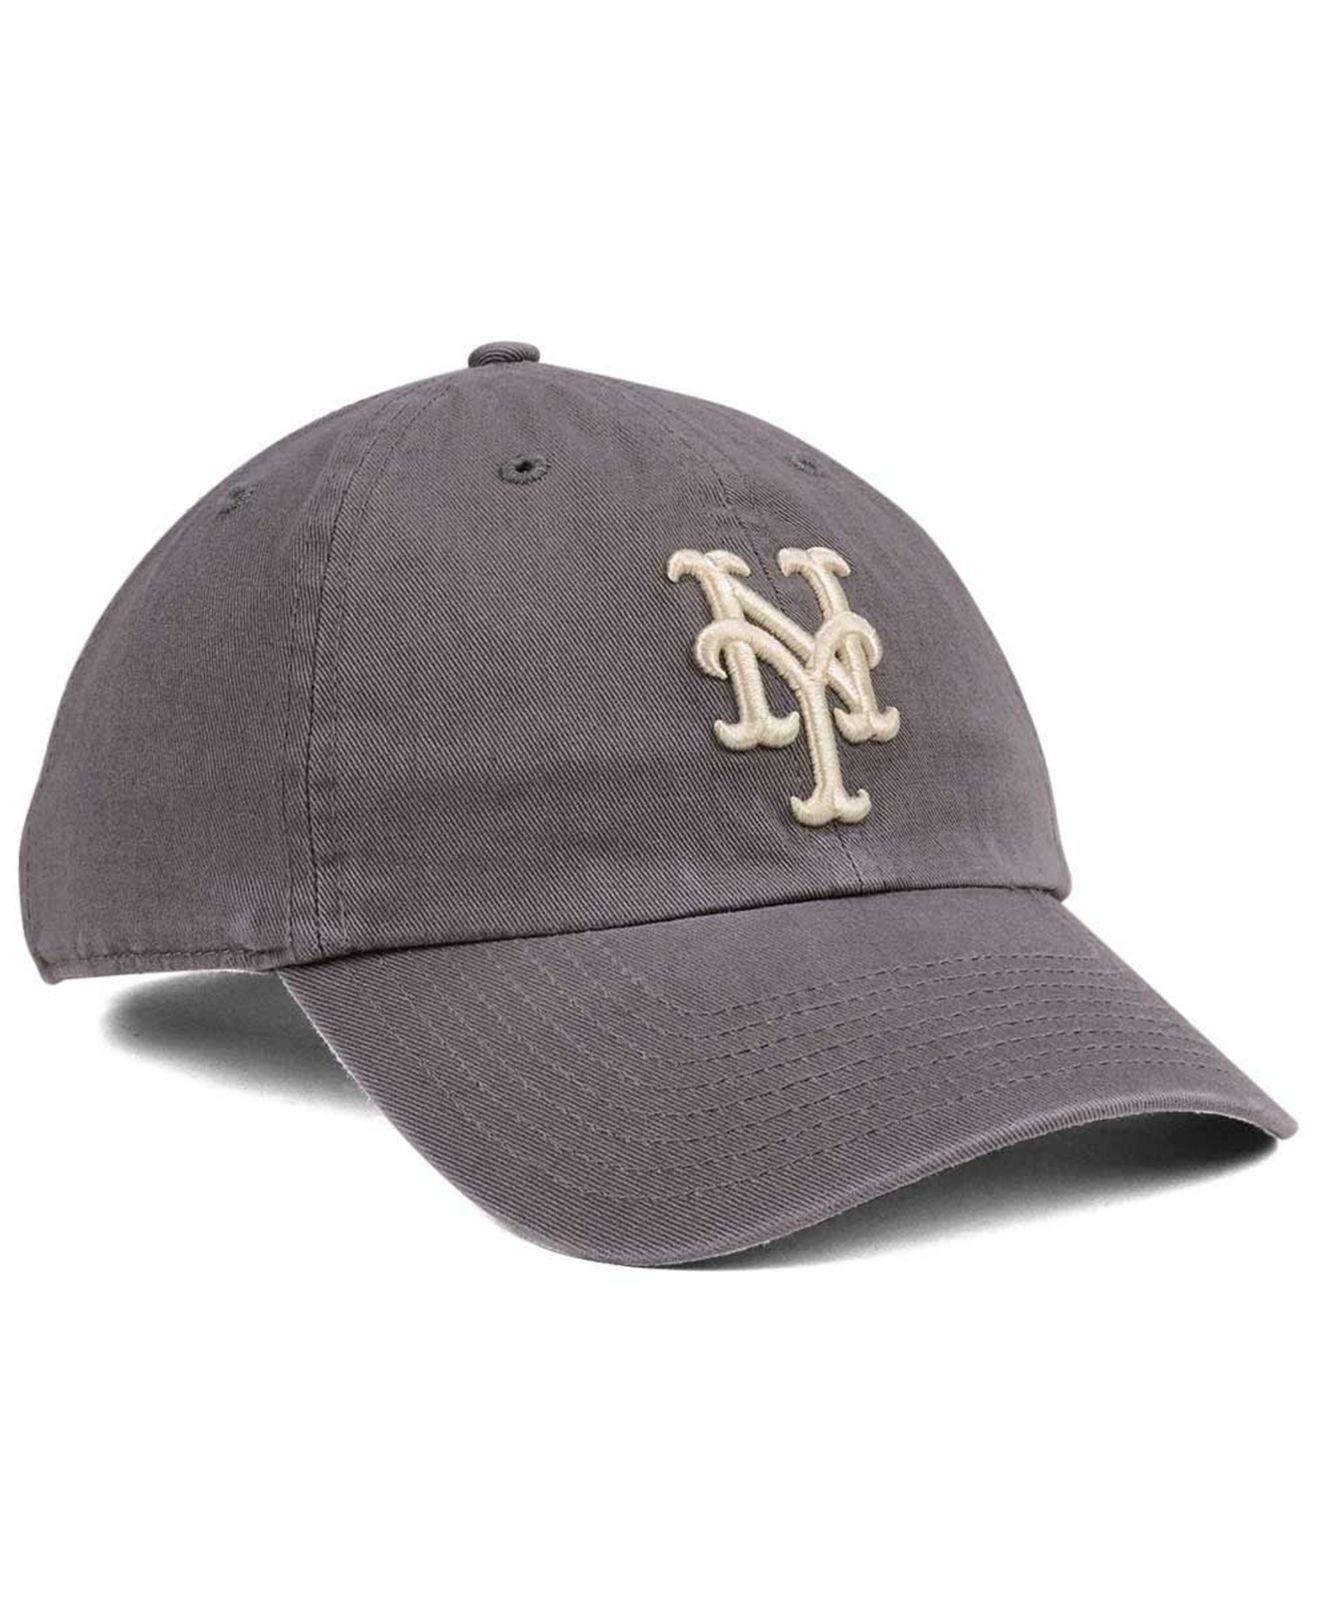 221326fd69315 ... reduced lyst 47 brand new york mets dark gray clean up cap in gray for  men